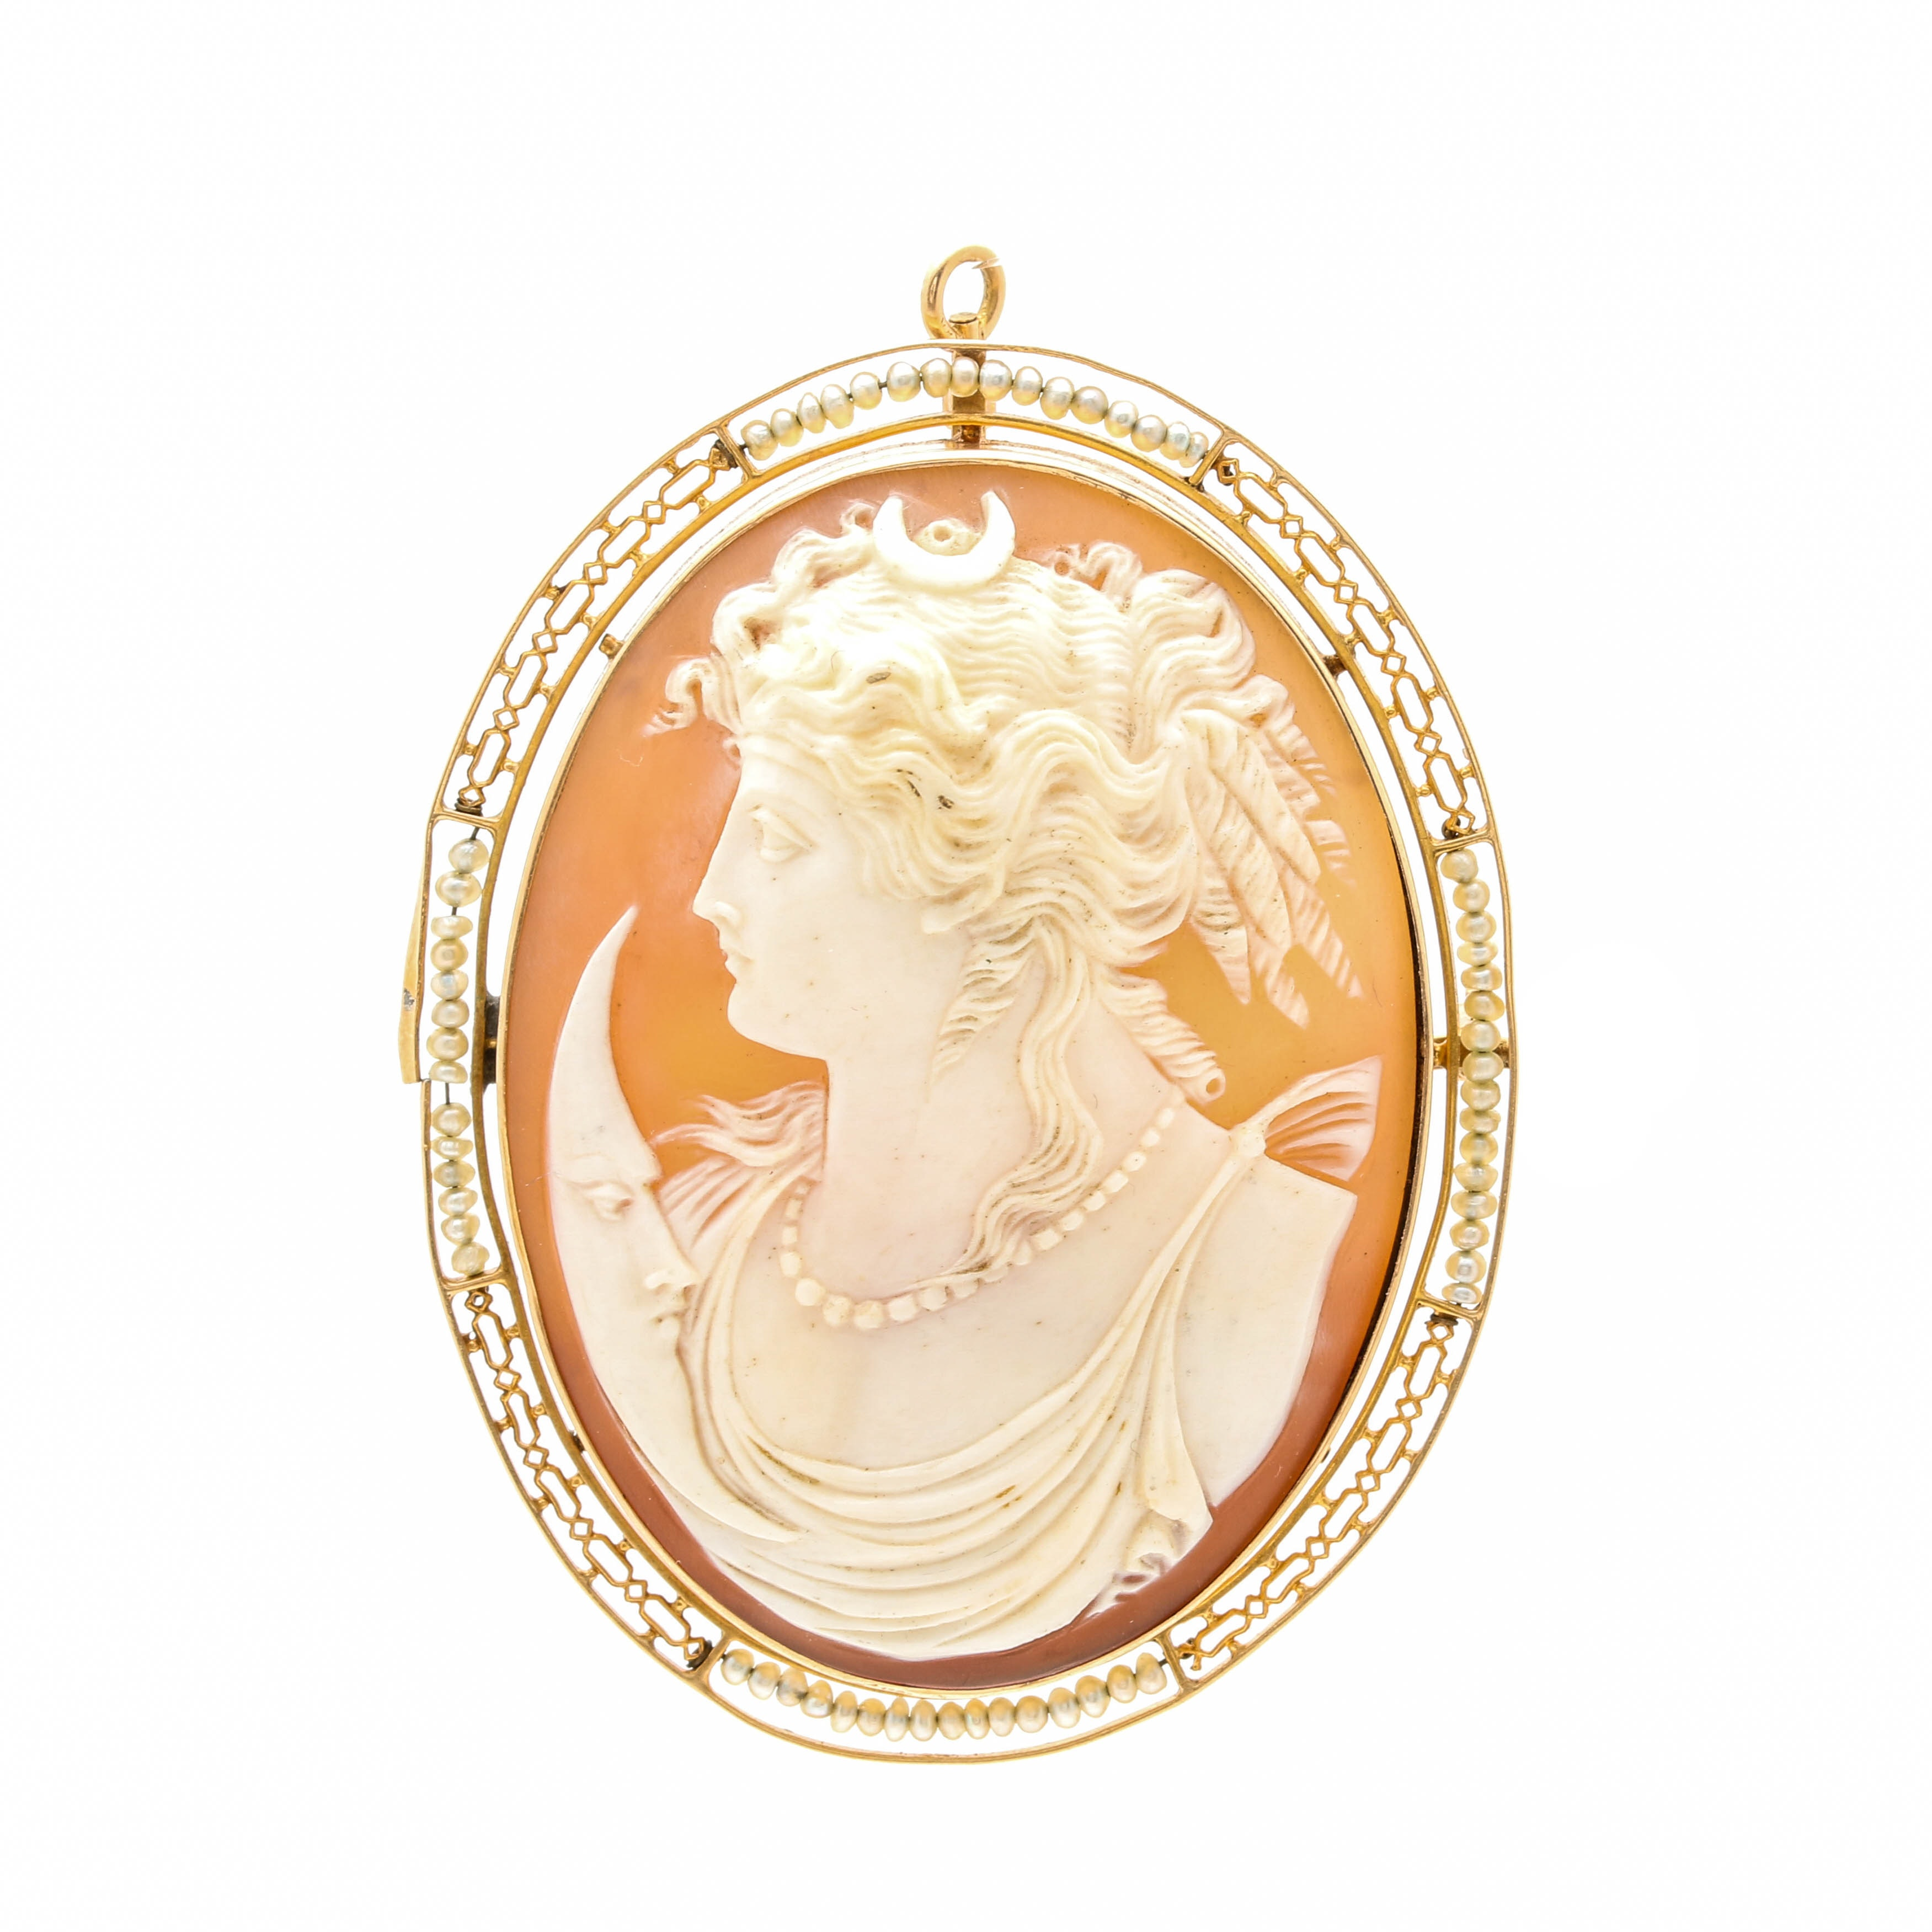 14K Yellow Gold Helmet Shell Cameo and Seed Pearl Converter Brooch